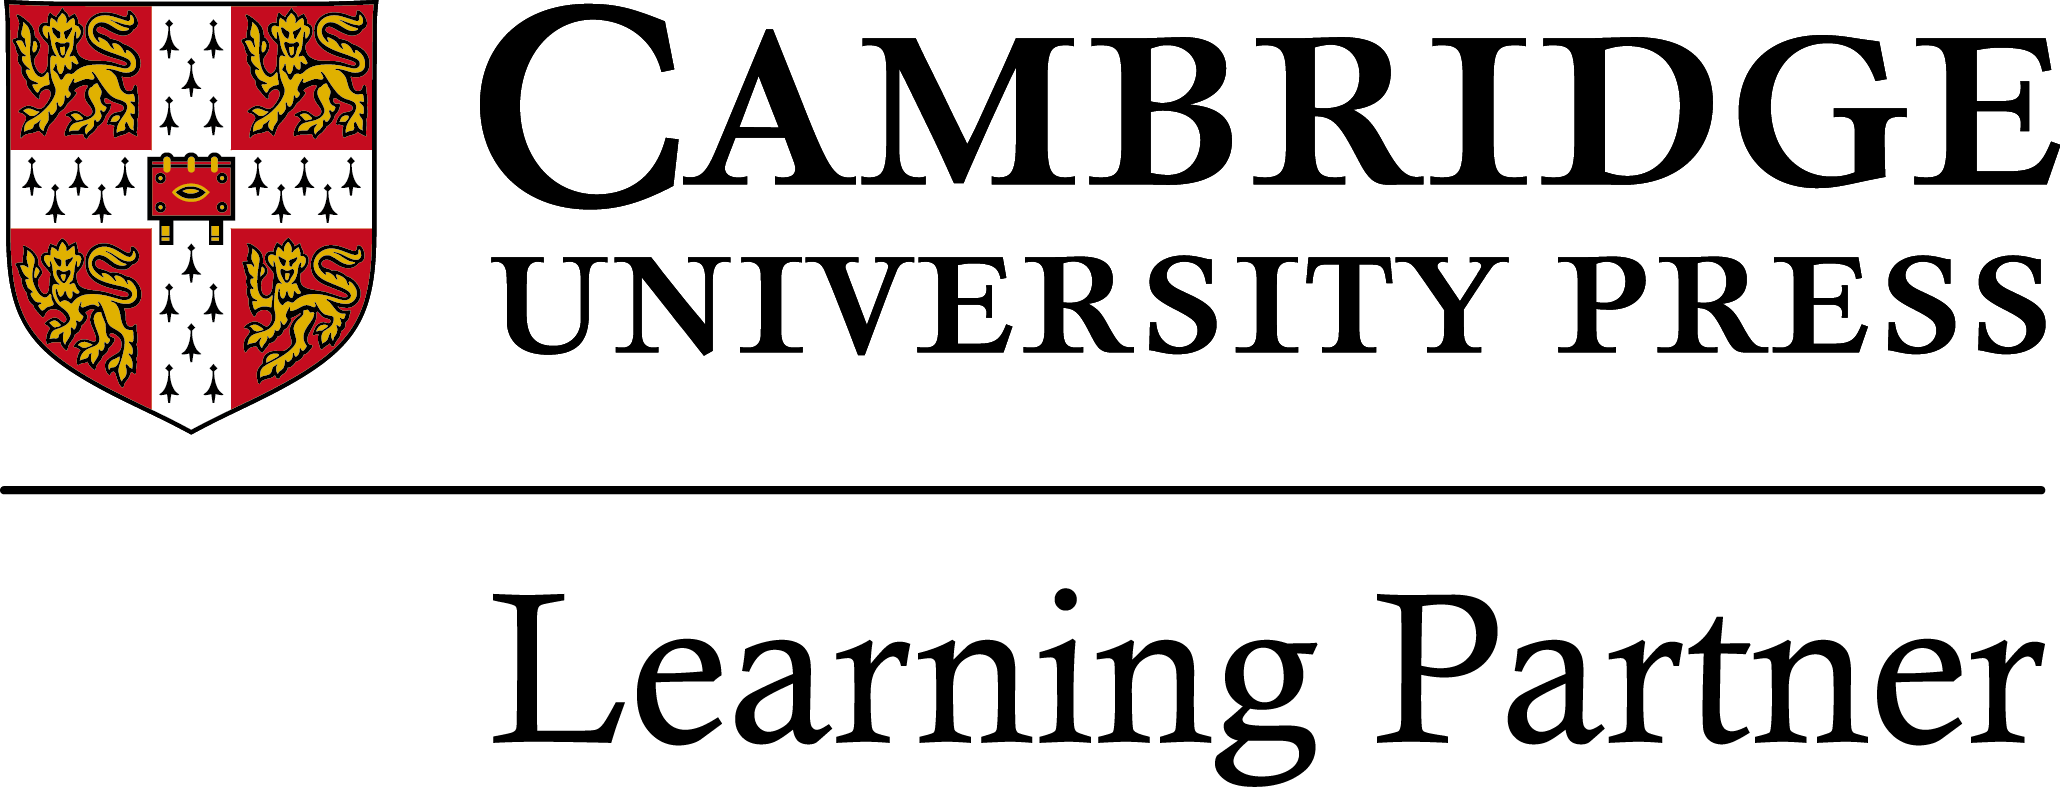 Oficial Cambridge.png